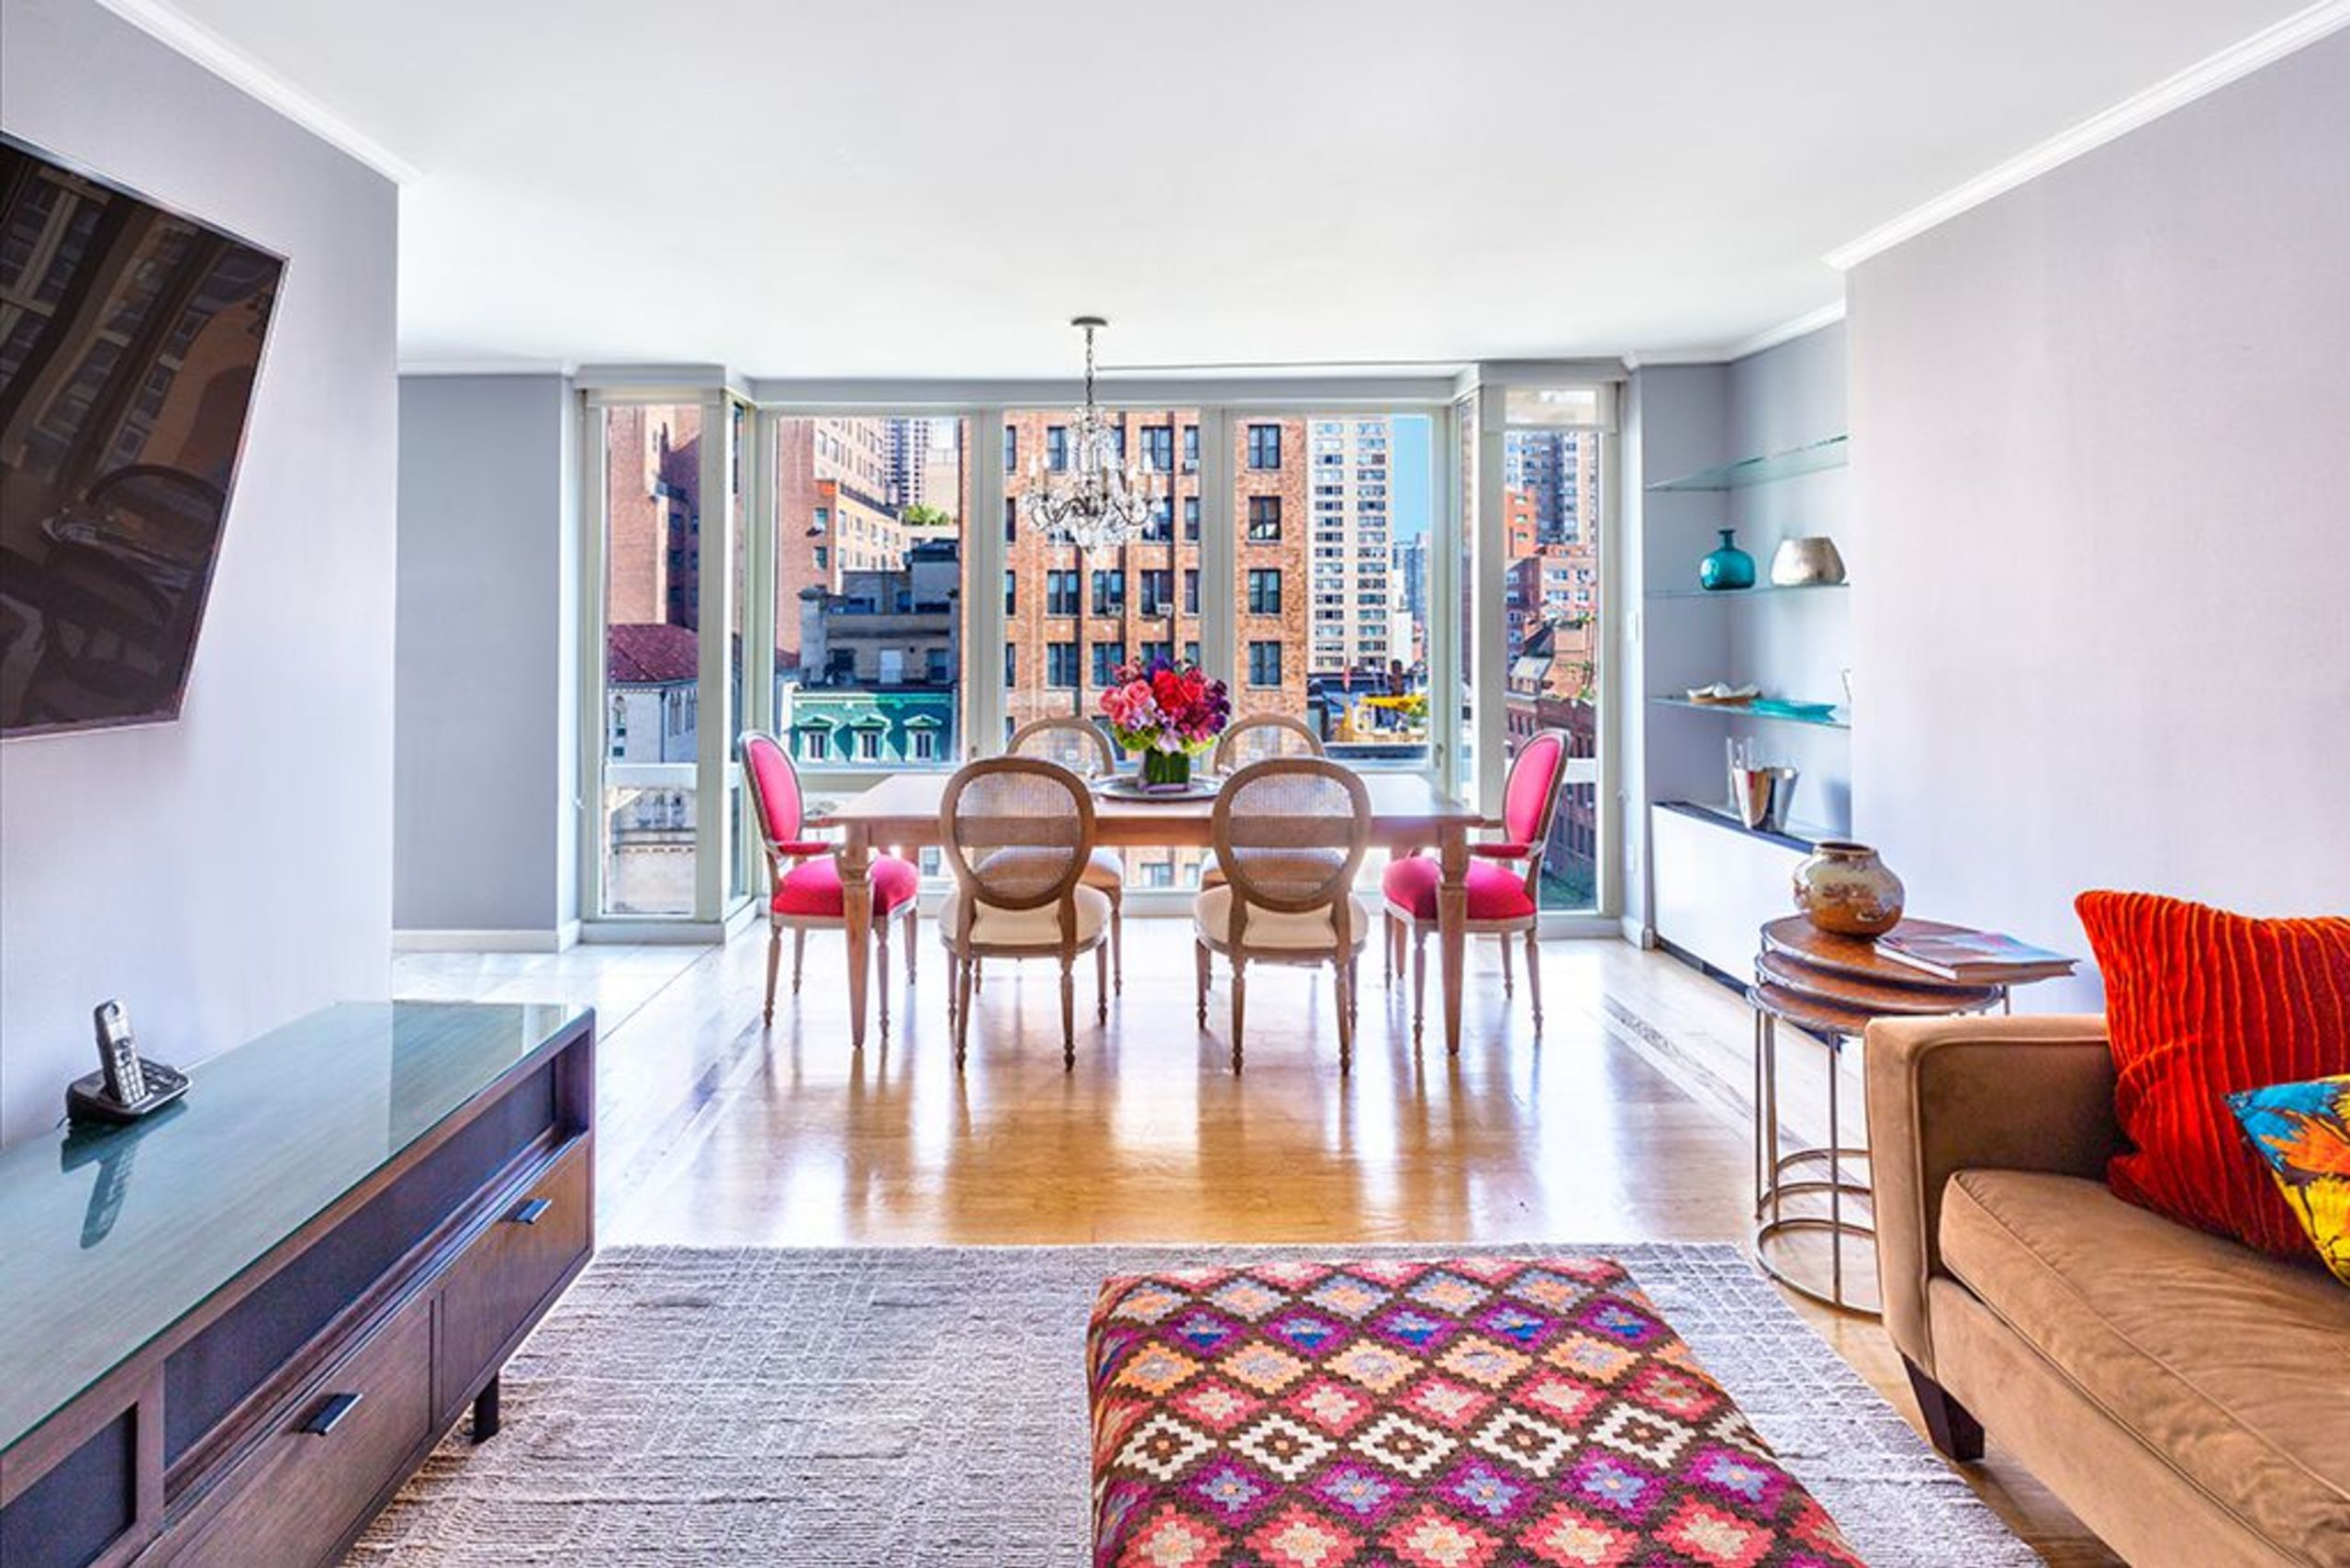 Full floor apartment in the middle of Manhattan - CLICK HERE